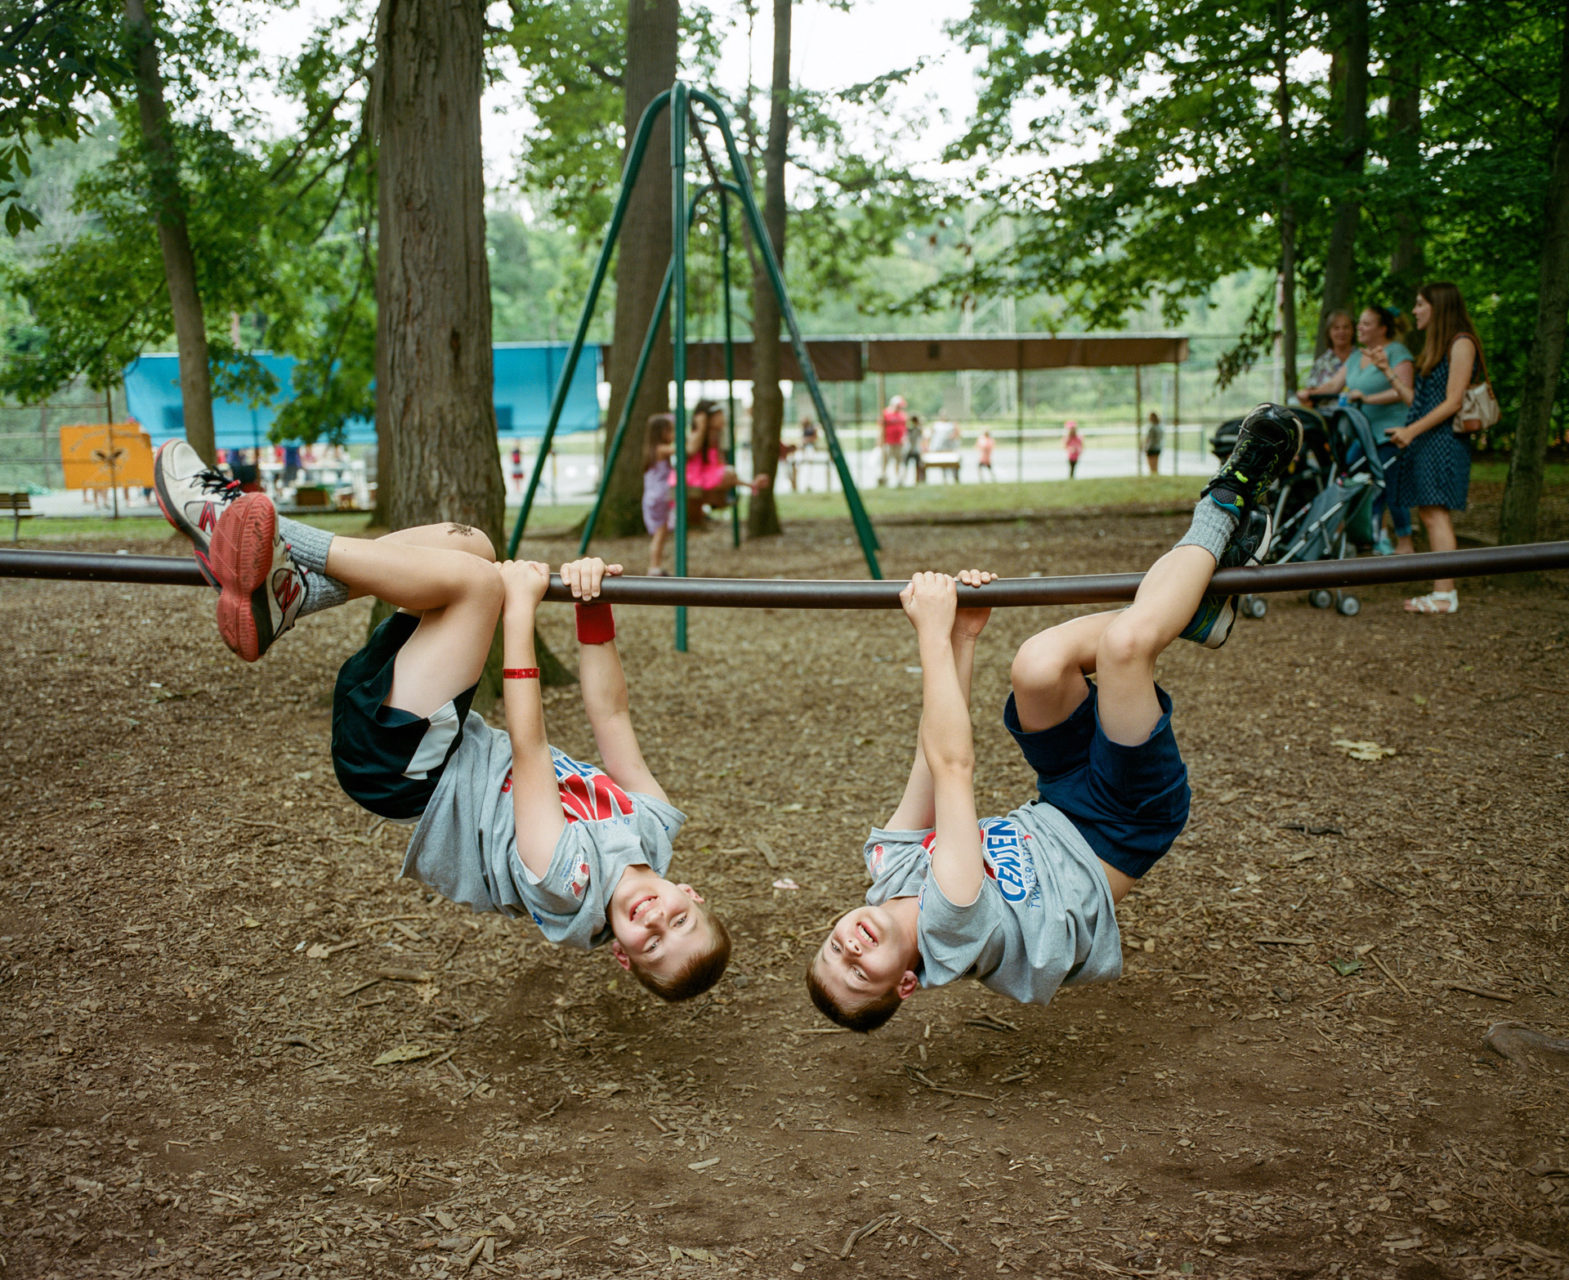 Reagan and Jack, 9, of Lenoir City, Tenn., attended Twins Days with their family. Reagan was described as timid and shy, yet a talker who likes to ride his bike. While his brother is more competitive and outgoing. Their father said when they come out of the pool or bathtub, or even from the side, he can't always tell them apart.